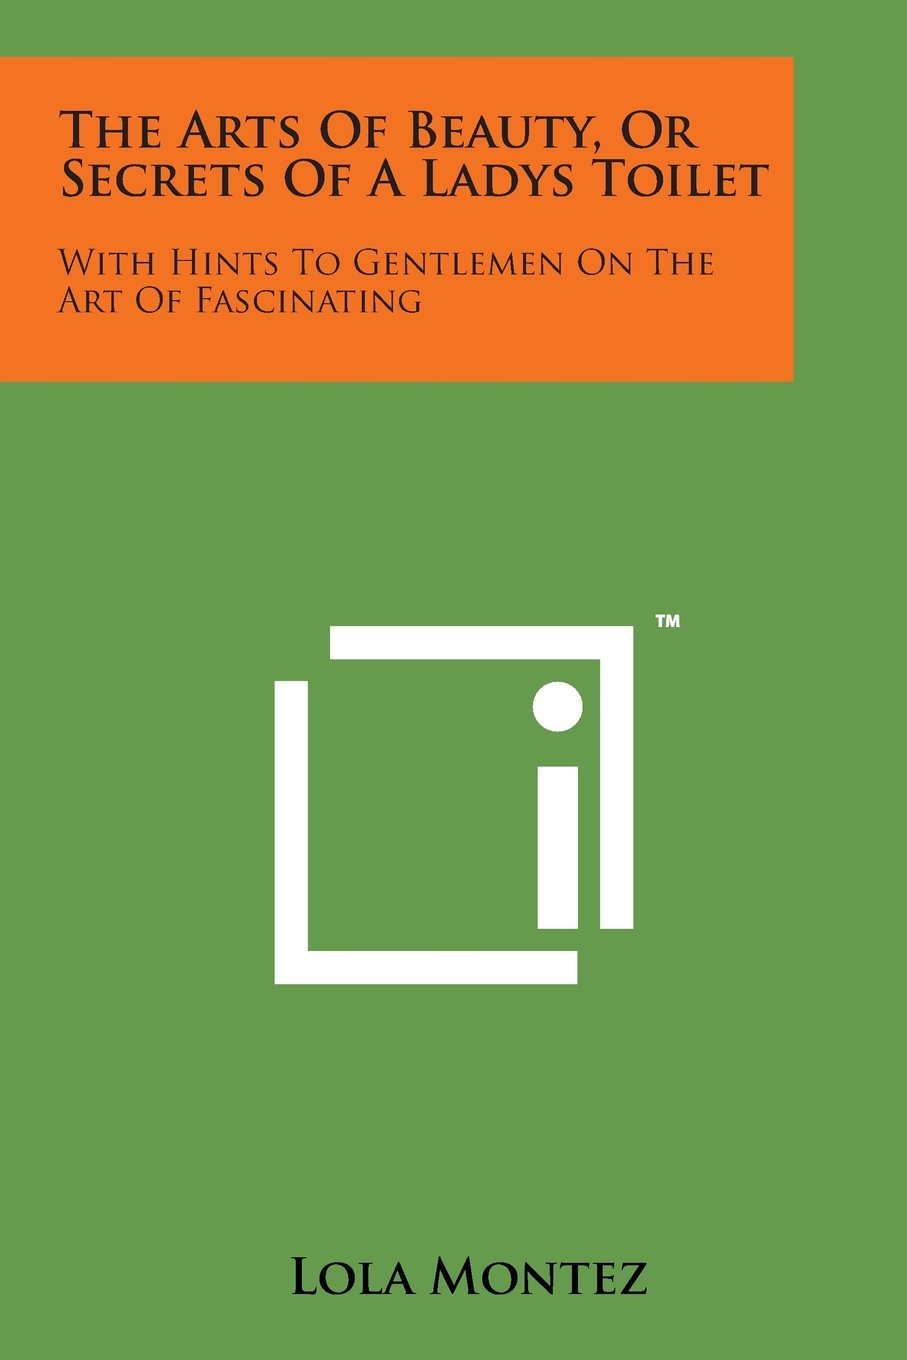 The Arts of Beauty, or Secrets of a Ladys Toilet: With Hints to Gentlemen on the Art of Fascinating pdf epub